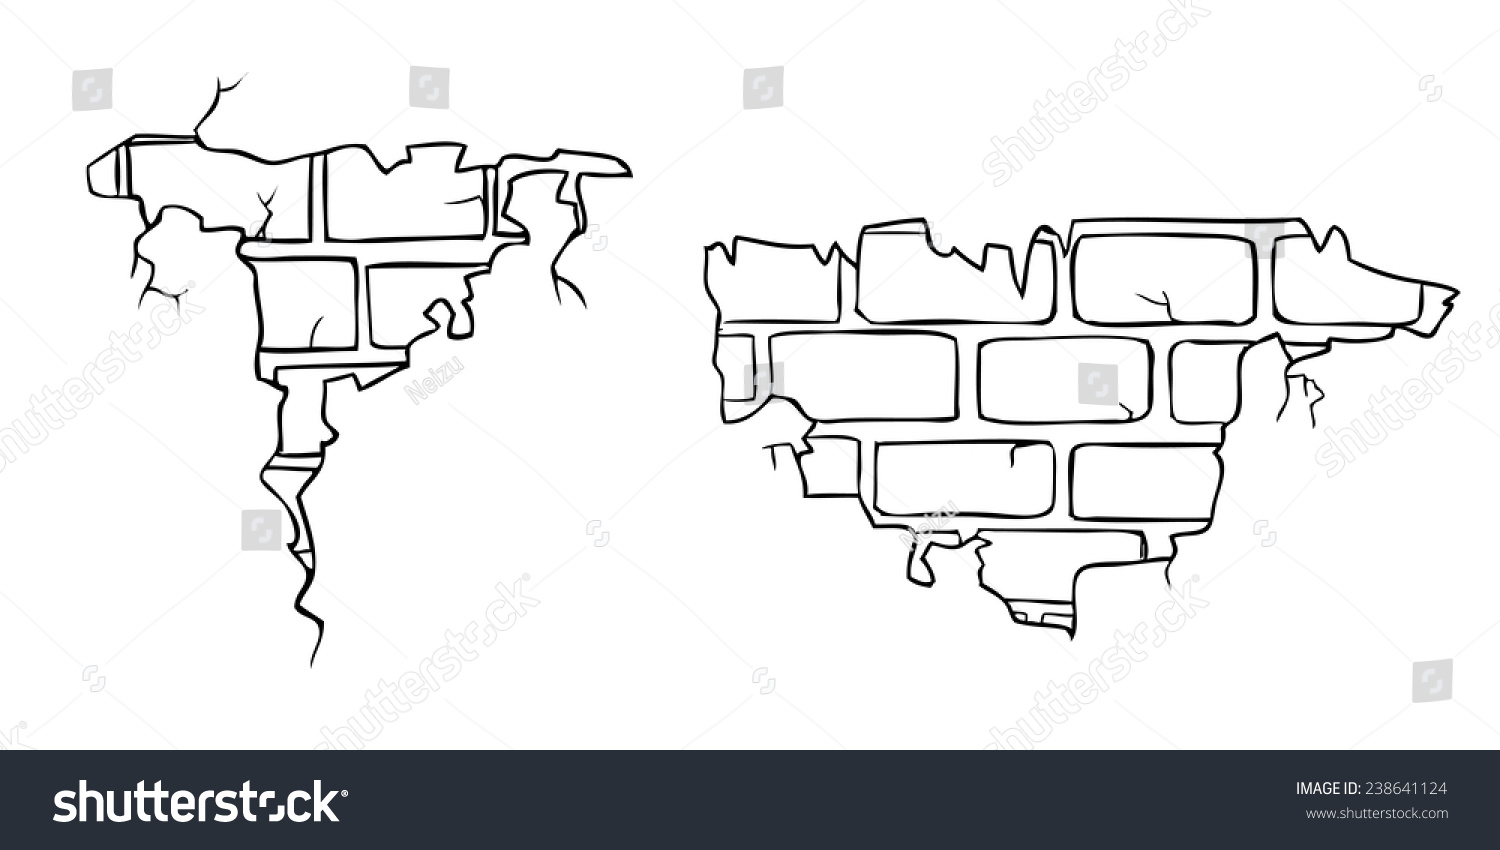 Cracked brick wall drawing brick wall - Brick Wall Crack Drawing